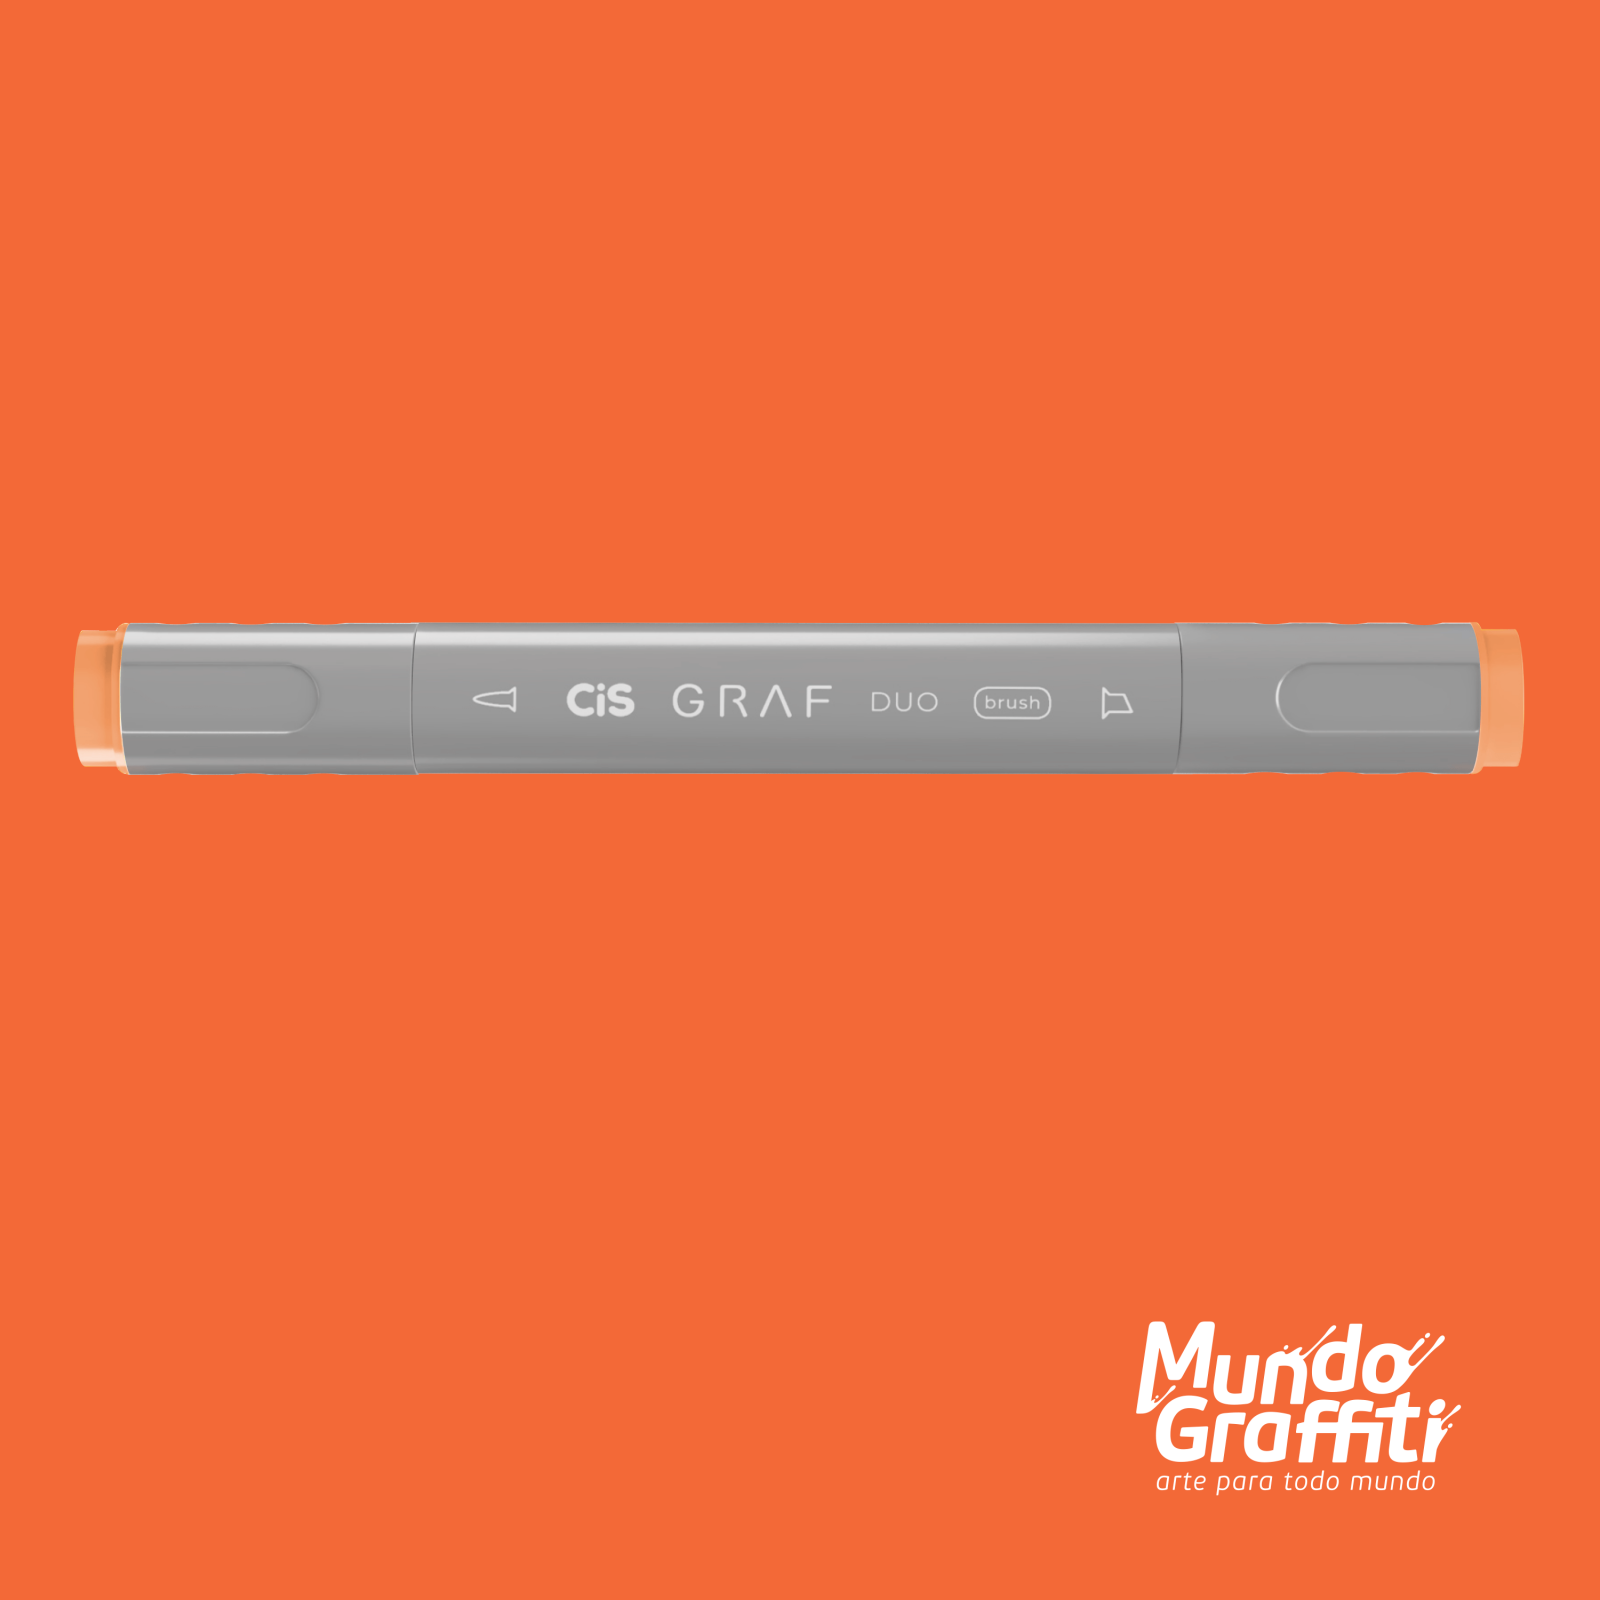 Marcador Cis Graf Duo Brush Orange 23 - Mundo Graffiti